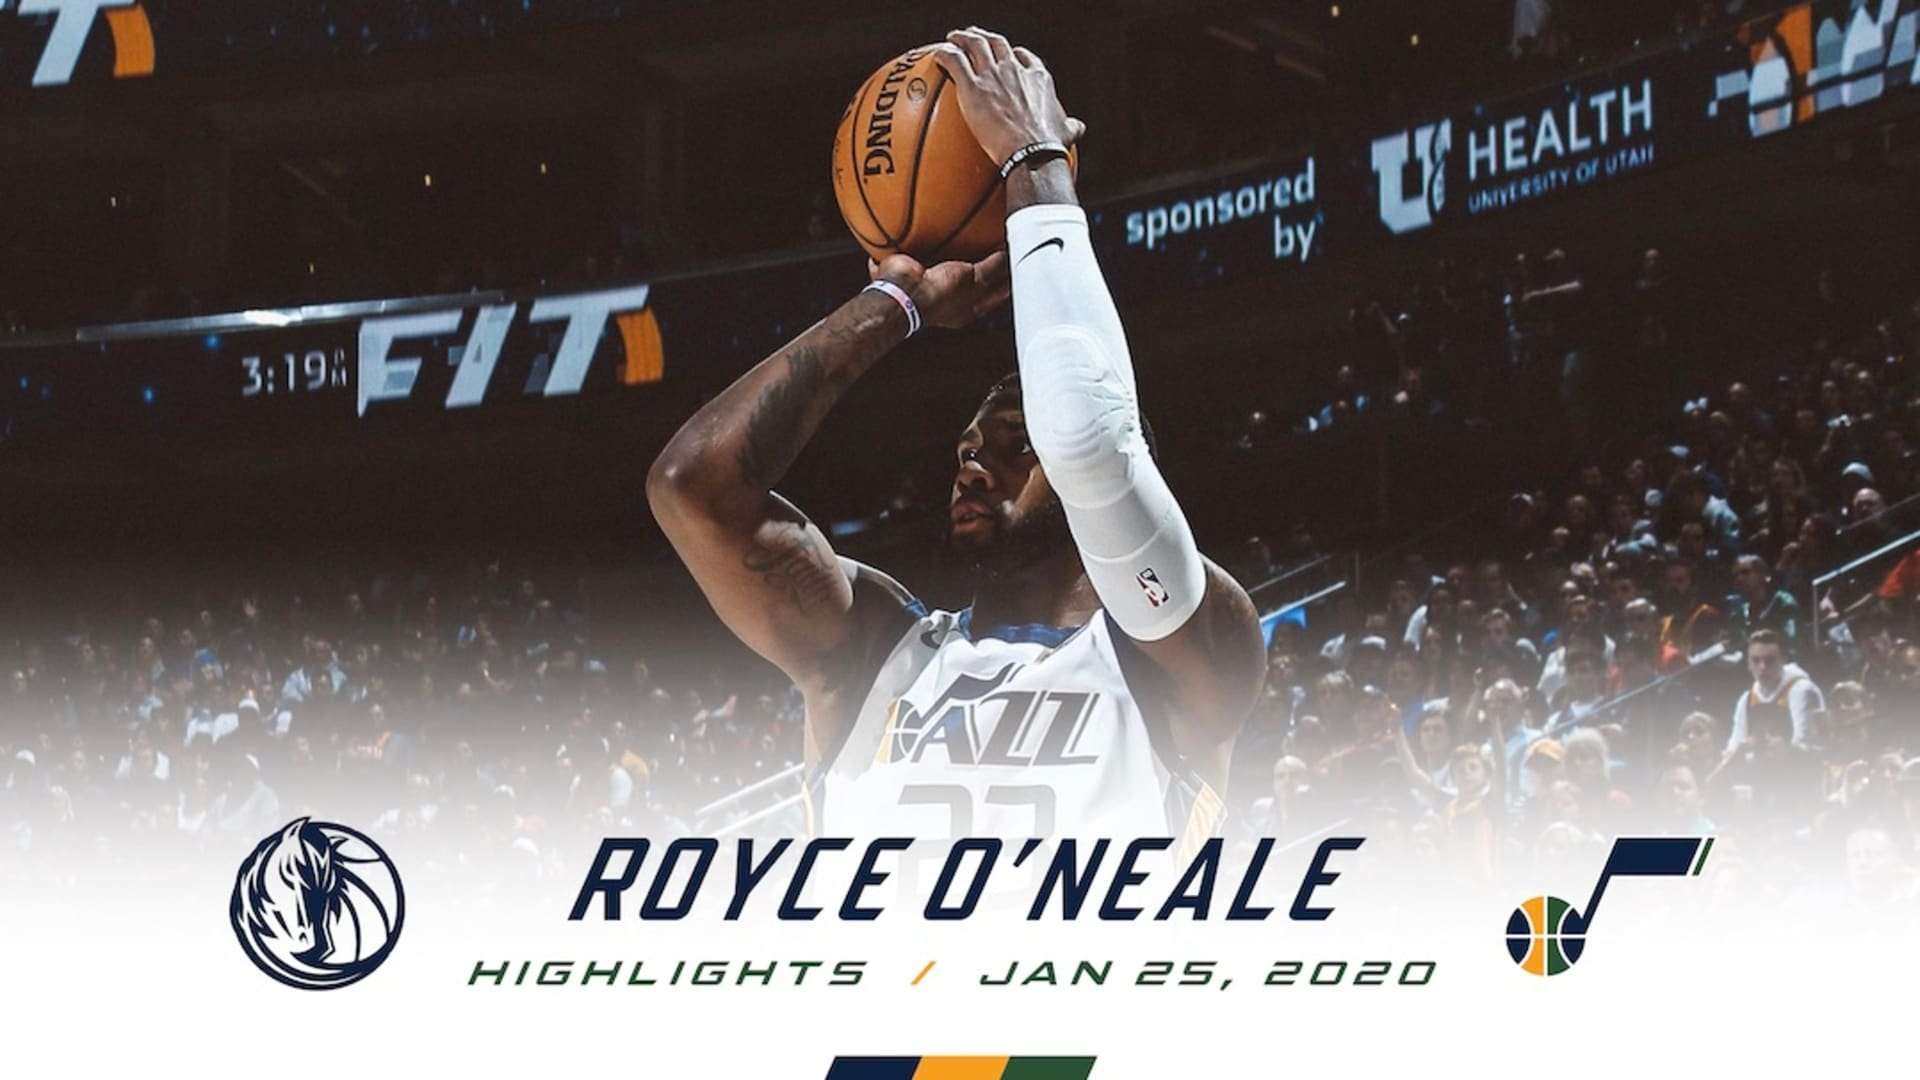 Highlights: Royce O'Neale — 12 points, 7 rebounds